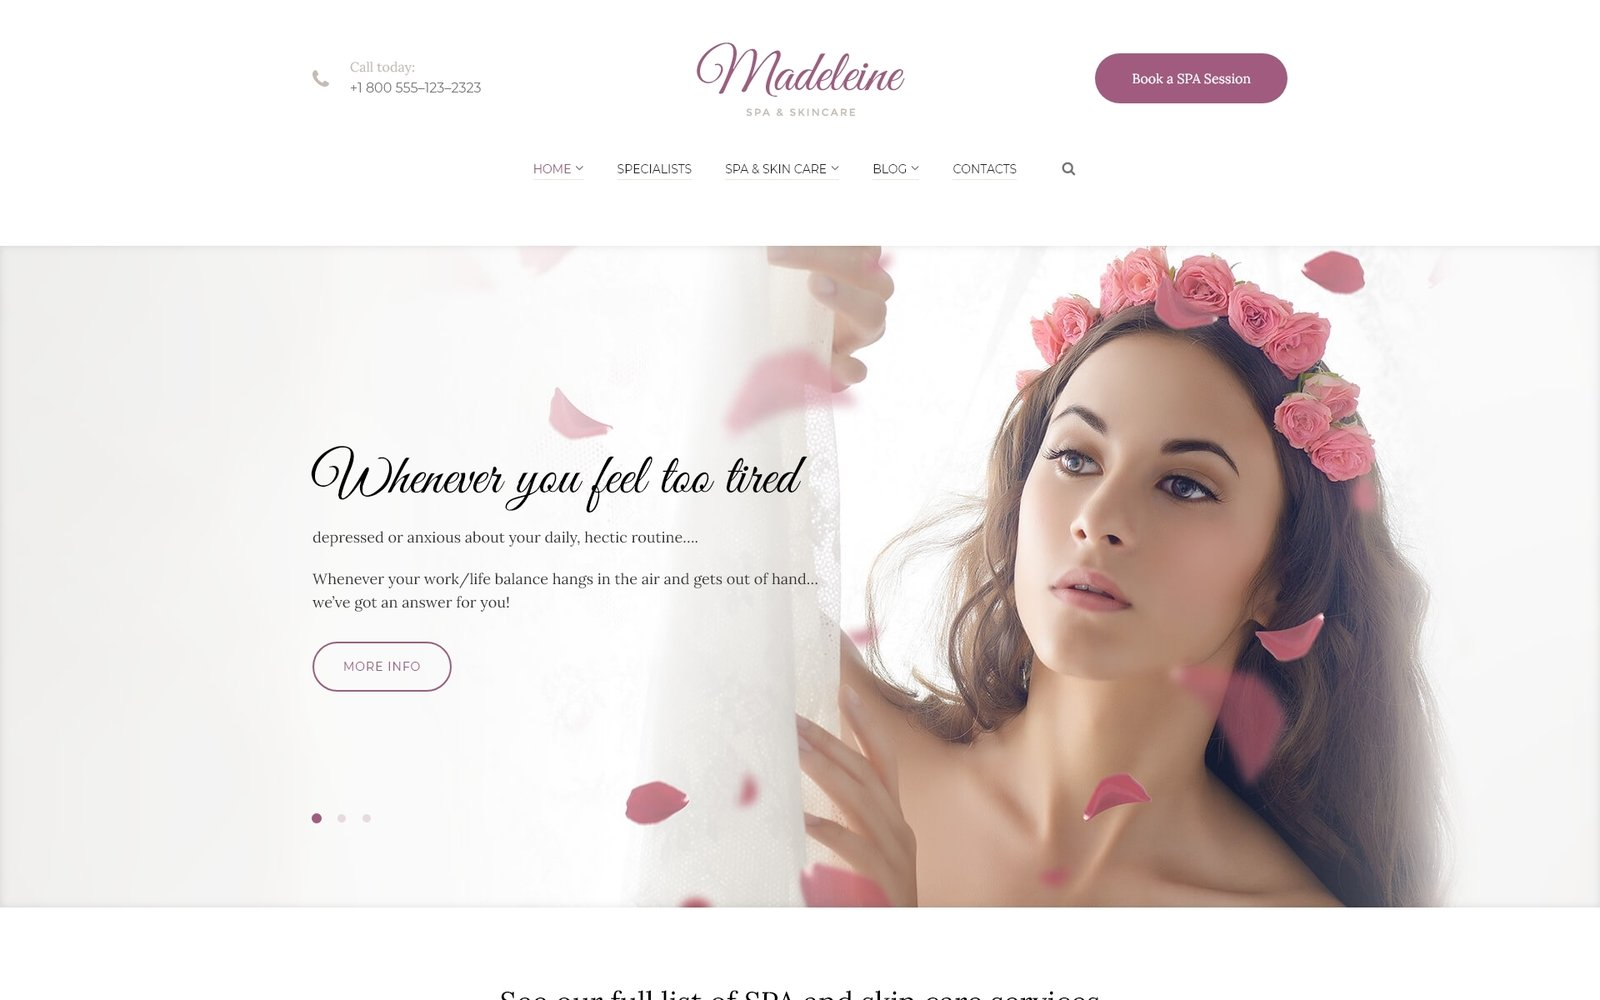 Madeleine - Spa Health & Skincare WordPress Theme - screenshot